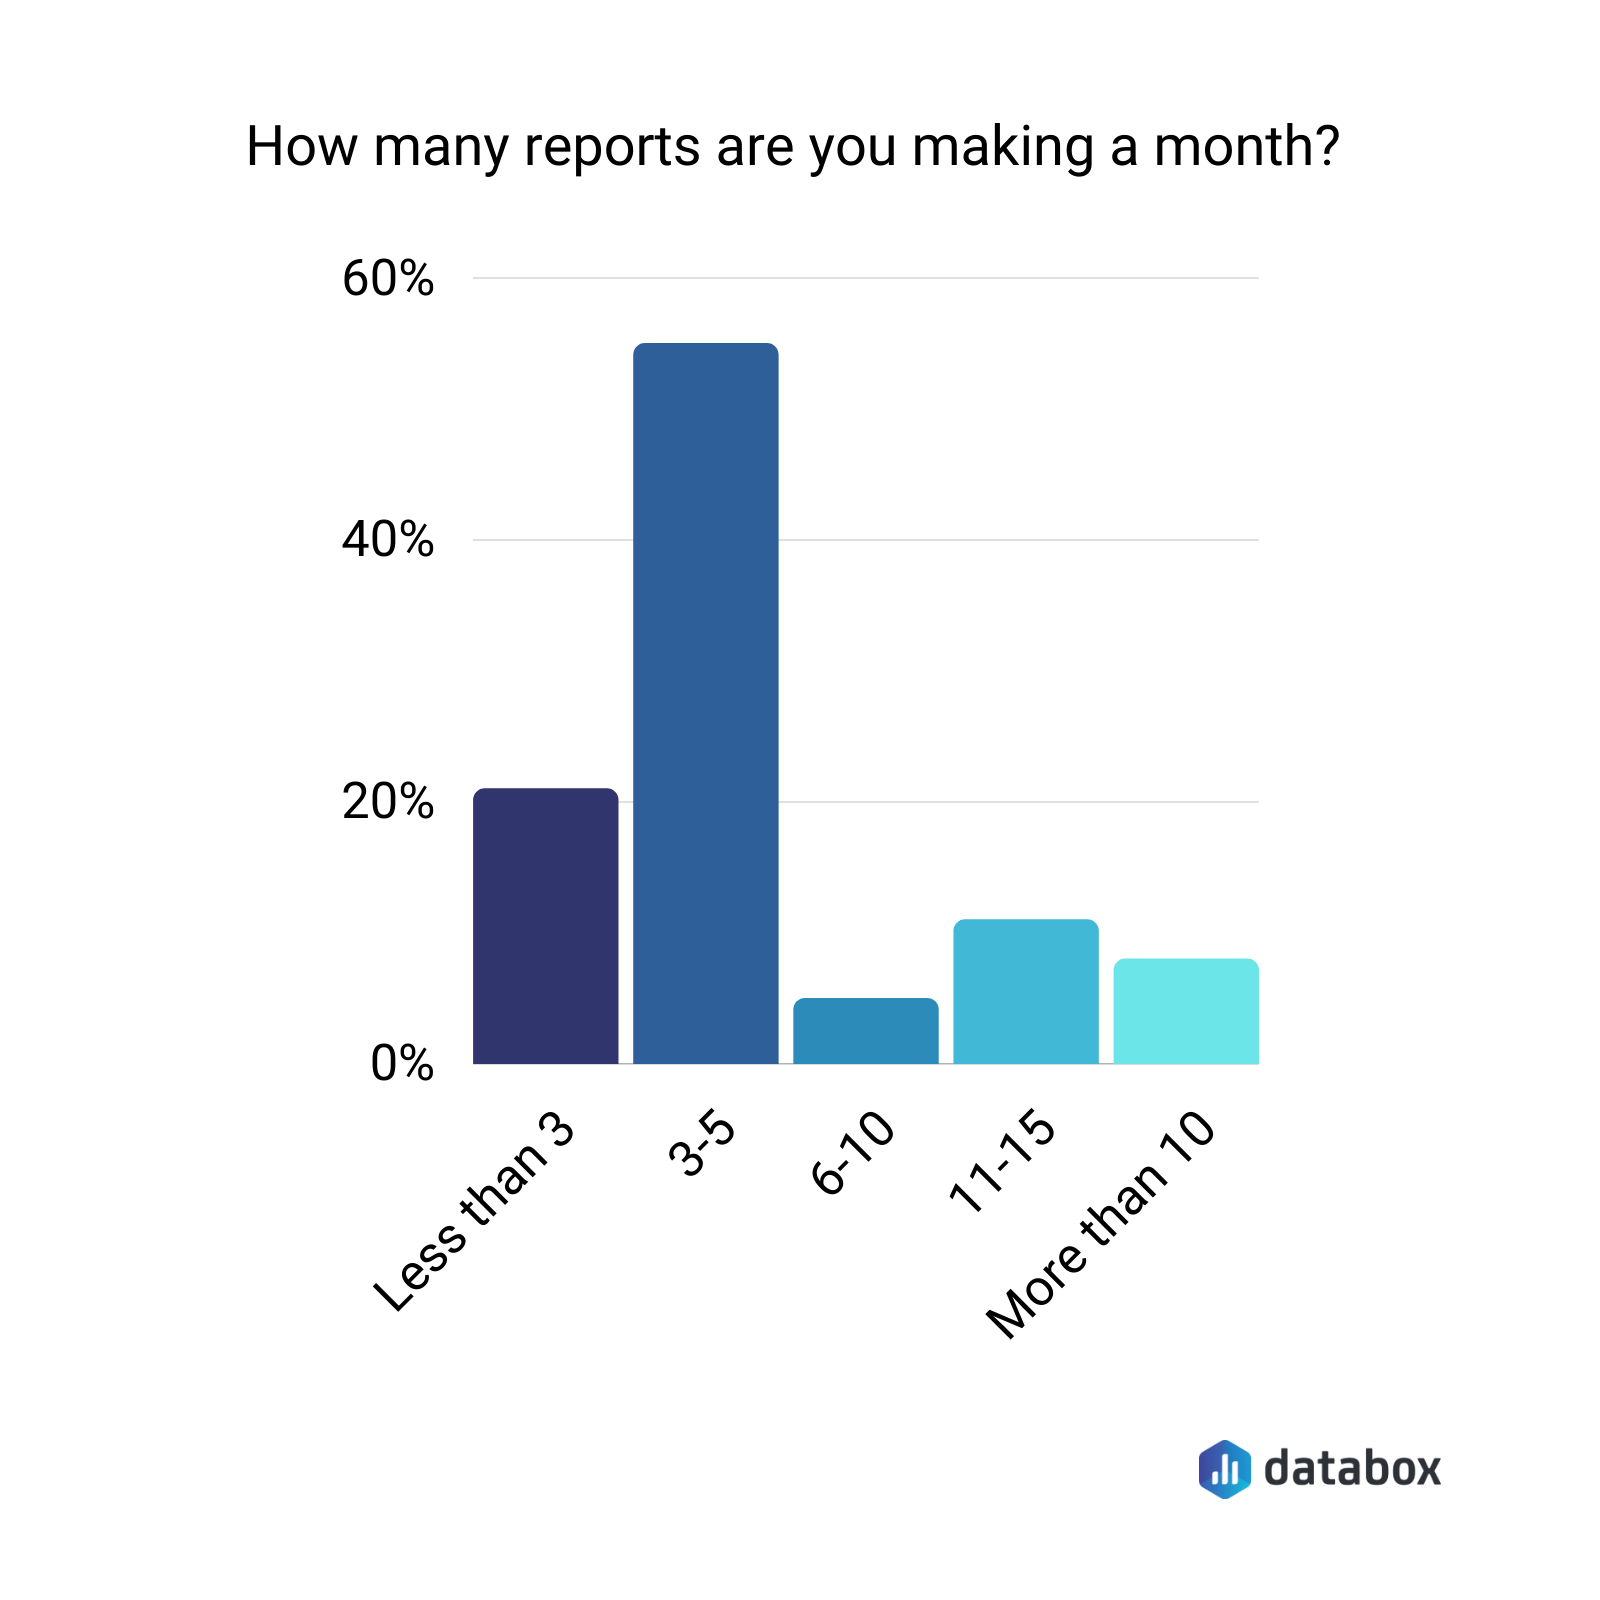 How many reports are you making a month?